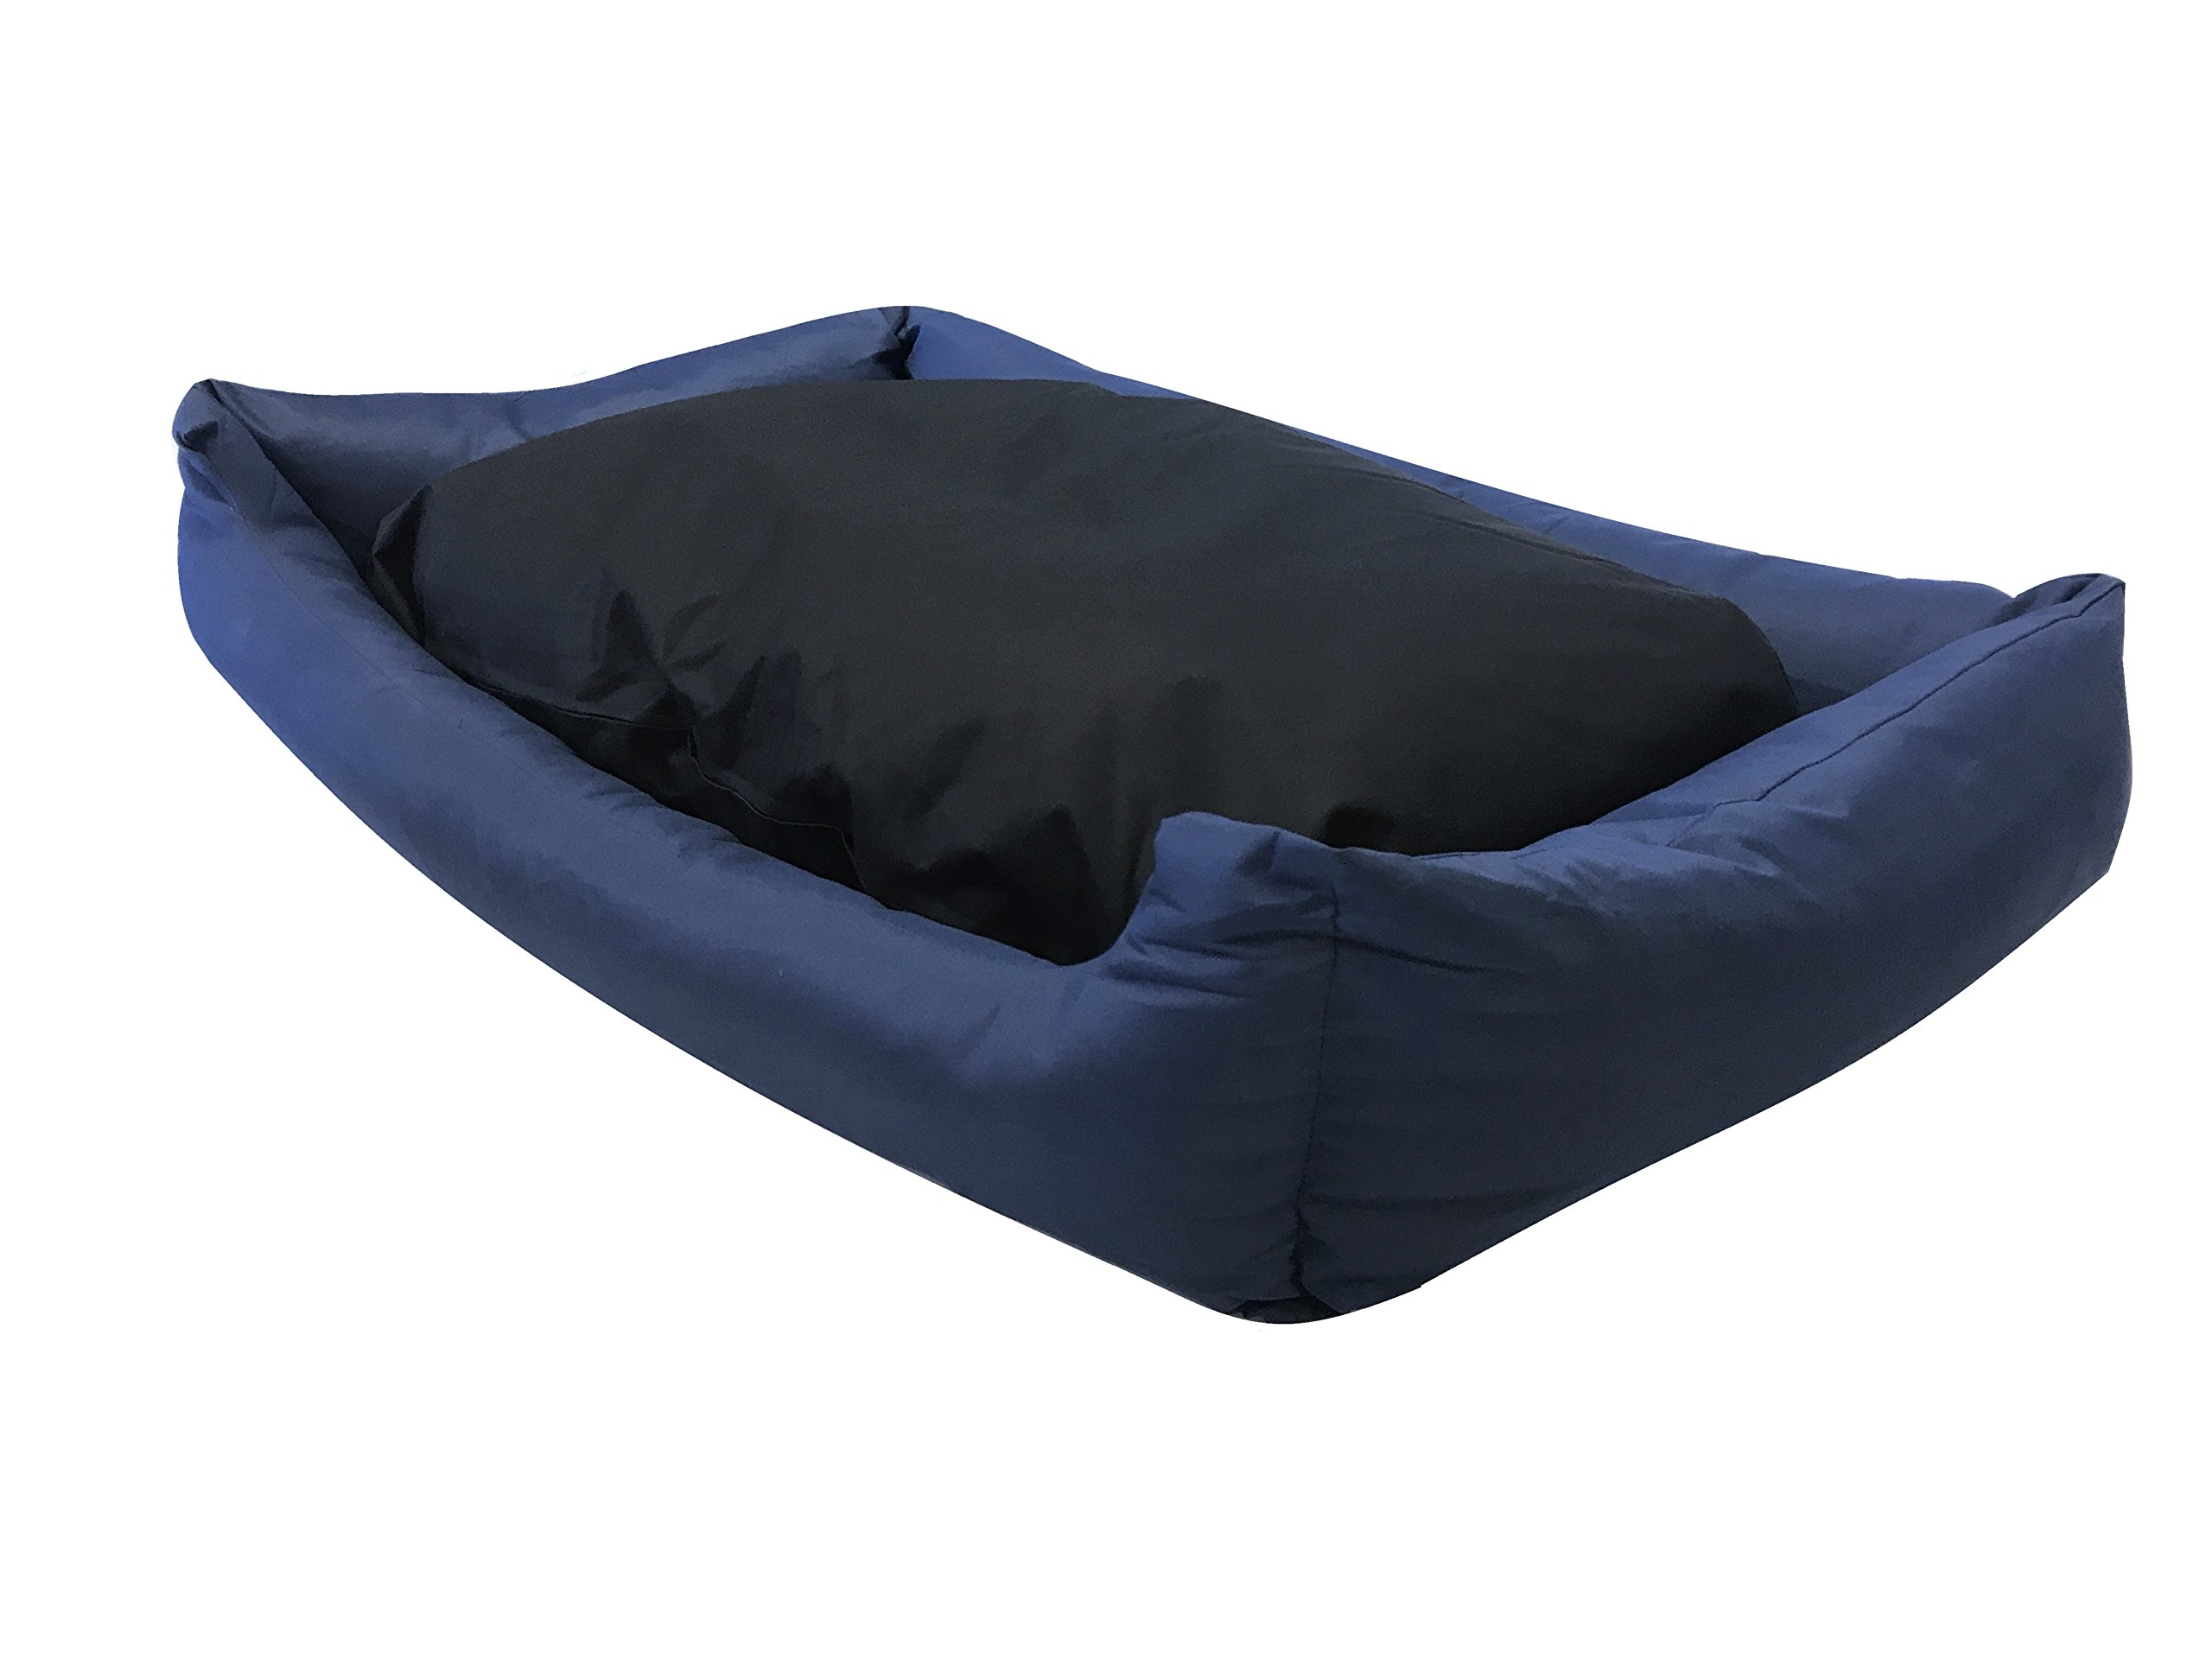 eConsumersUSA Dog Bed Stuffed Pillow with Polyester Filling; Durable External Oxford Fabric Waterproof Anti Slip Cover and Inner Liner Included for Small to Large Dogs (48x30 inches, Blue)